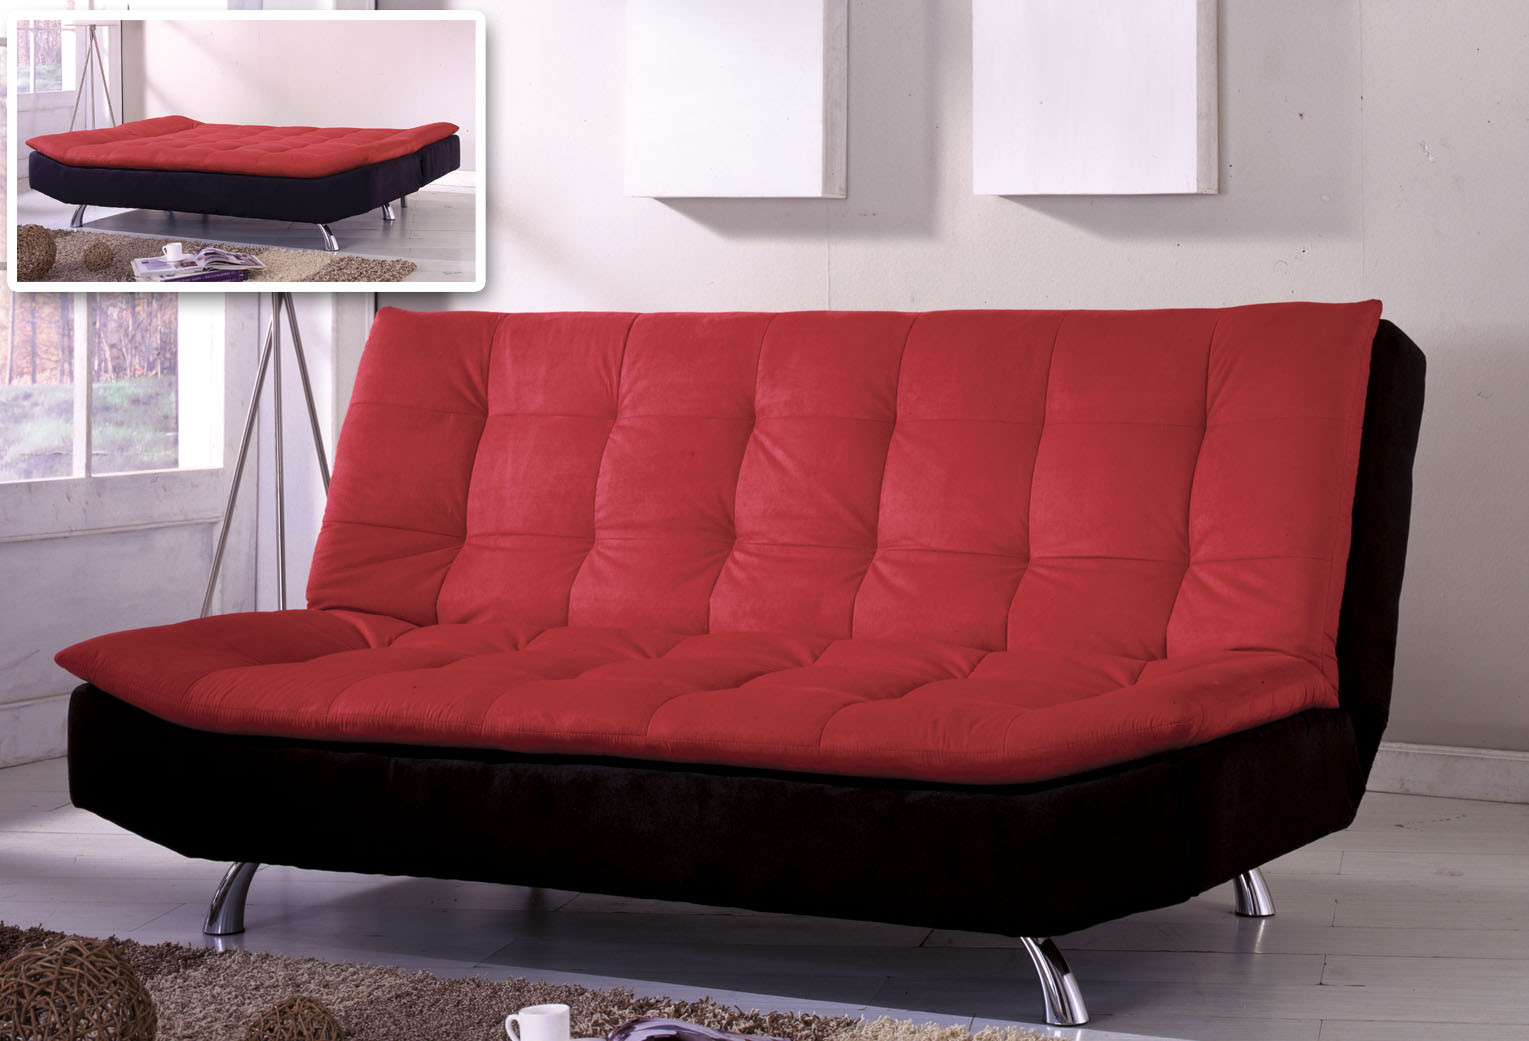 futon sofa bed sophisticated furniture inoutinterior. Black Bedroom Furniture Sets. Home Design Ideas